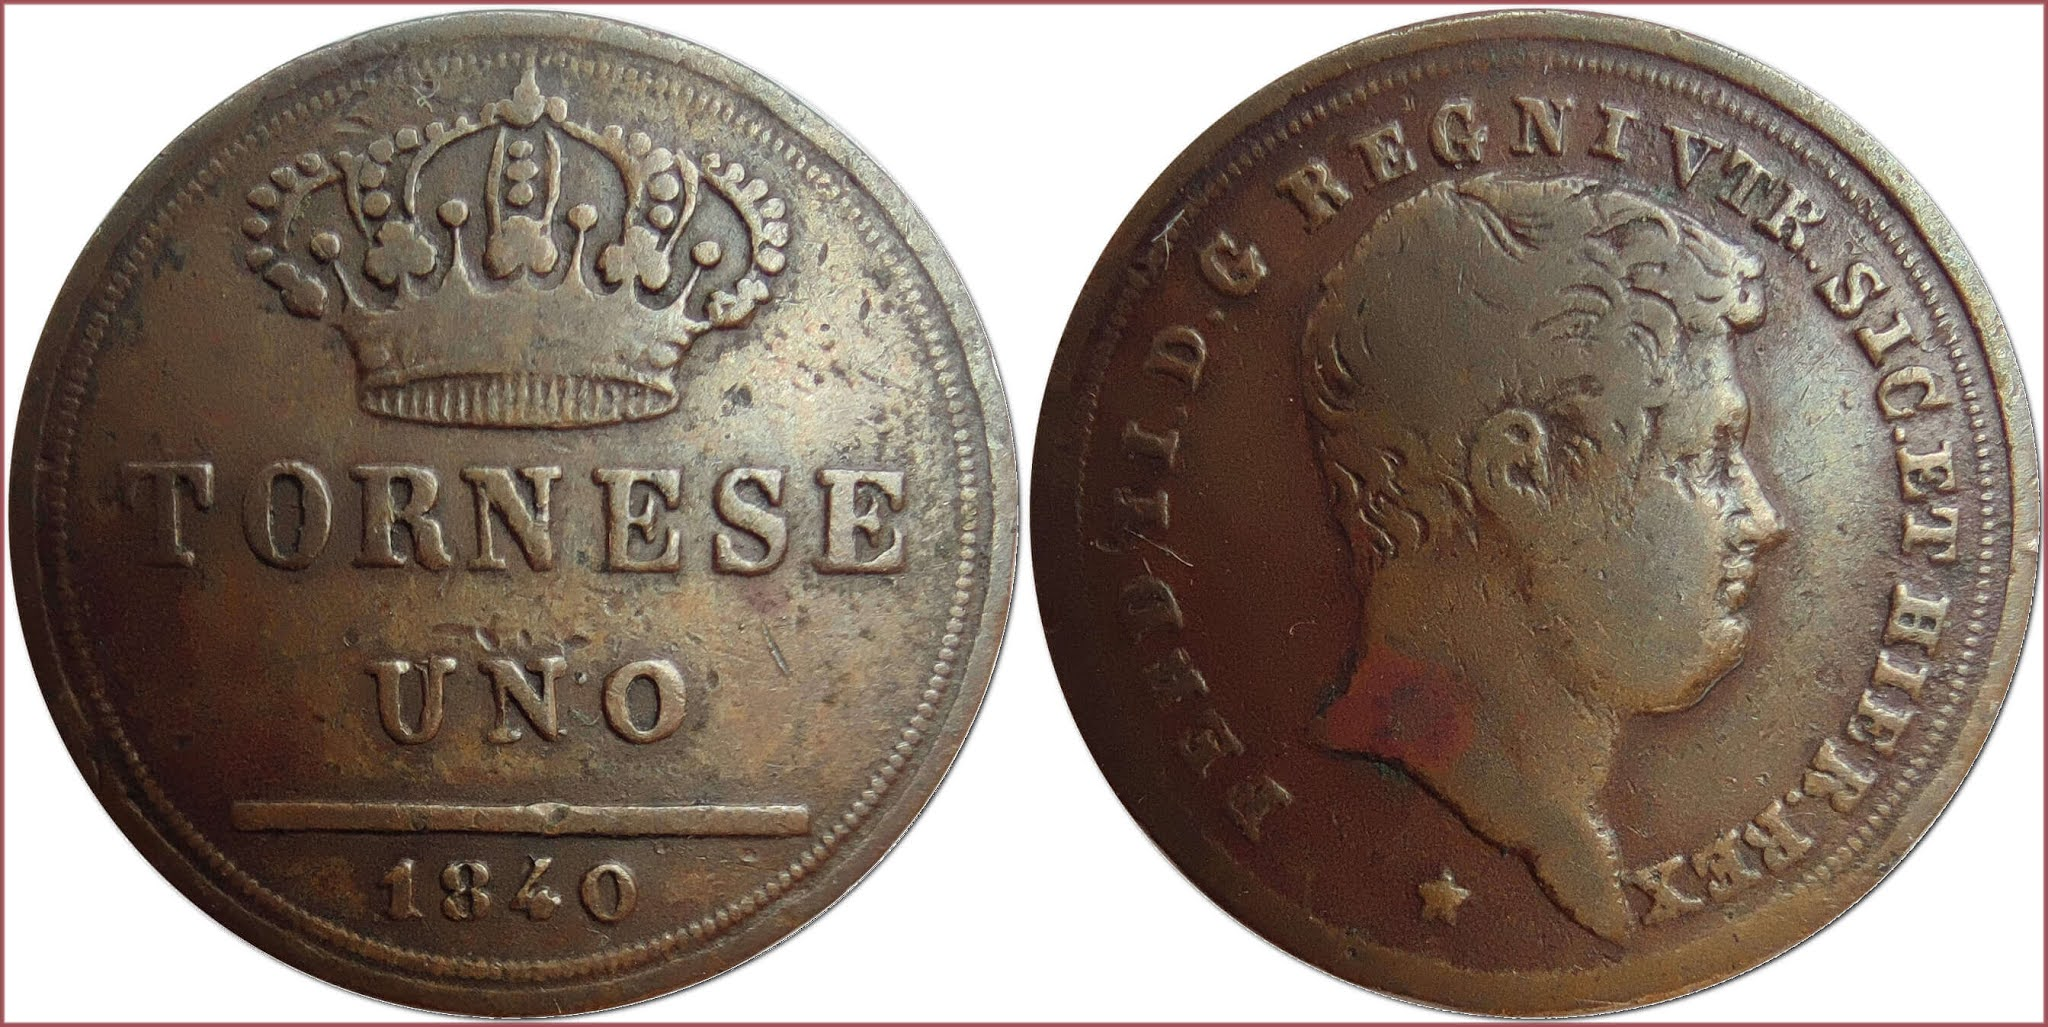 1 tornese, 1840: Kingdom of the Two Sicilies